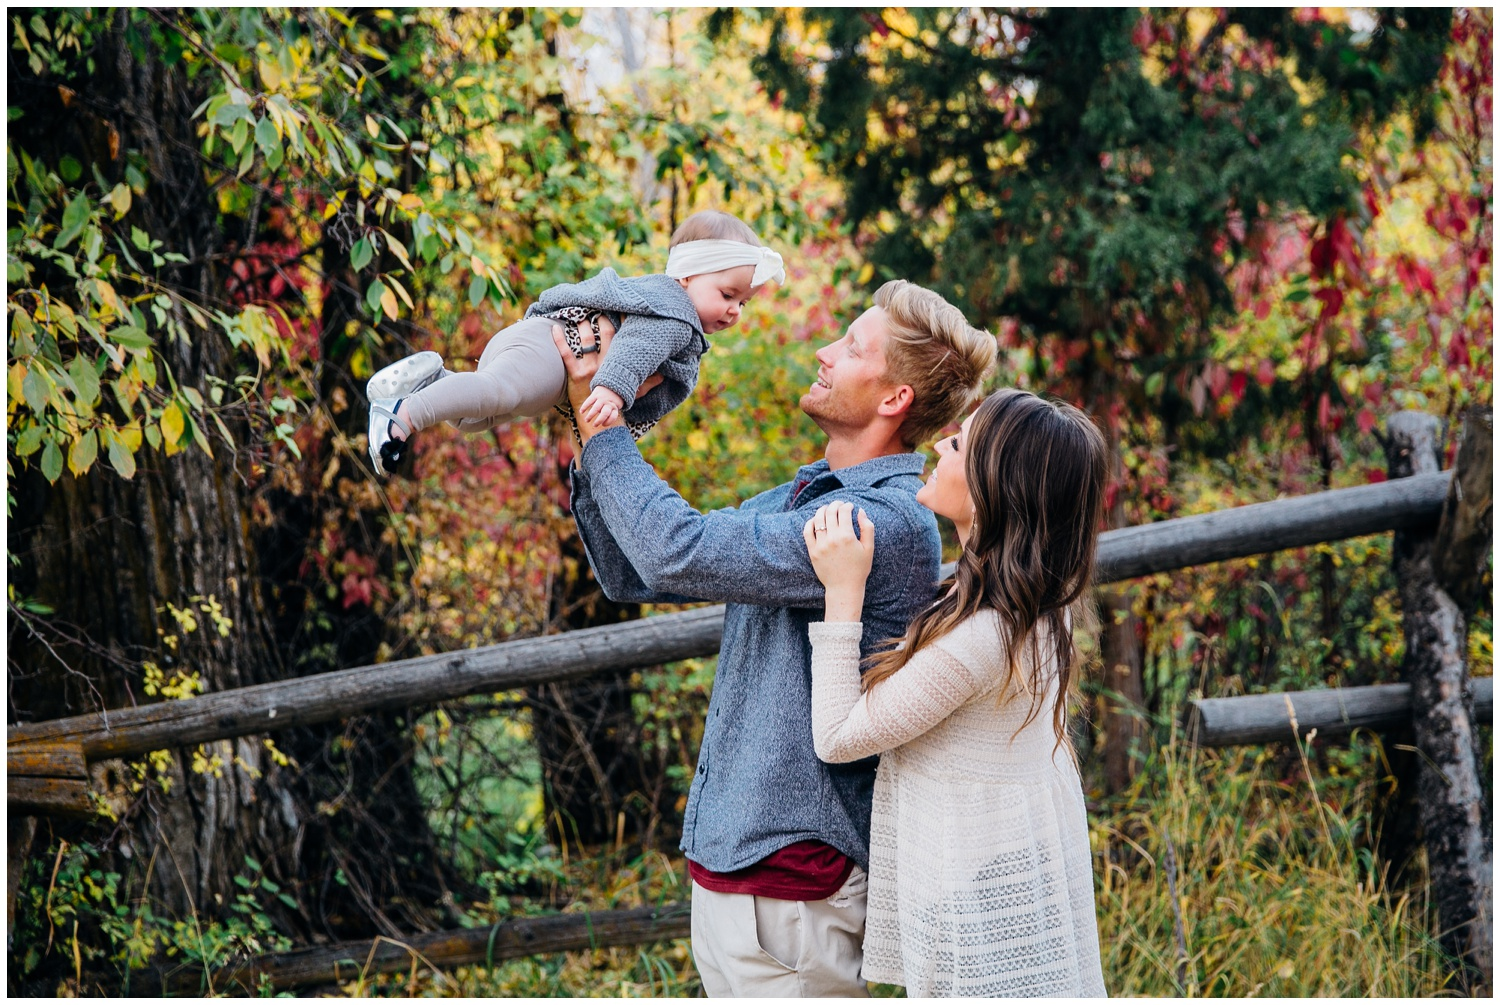 idaho-adventure-wedding-photographer-idaho-falls-rigby-rexburg-engagements_1616.jpg